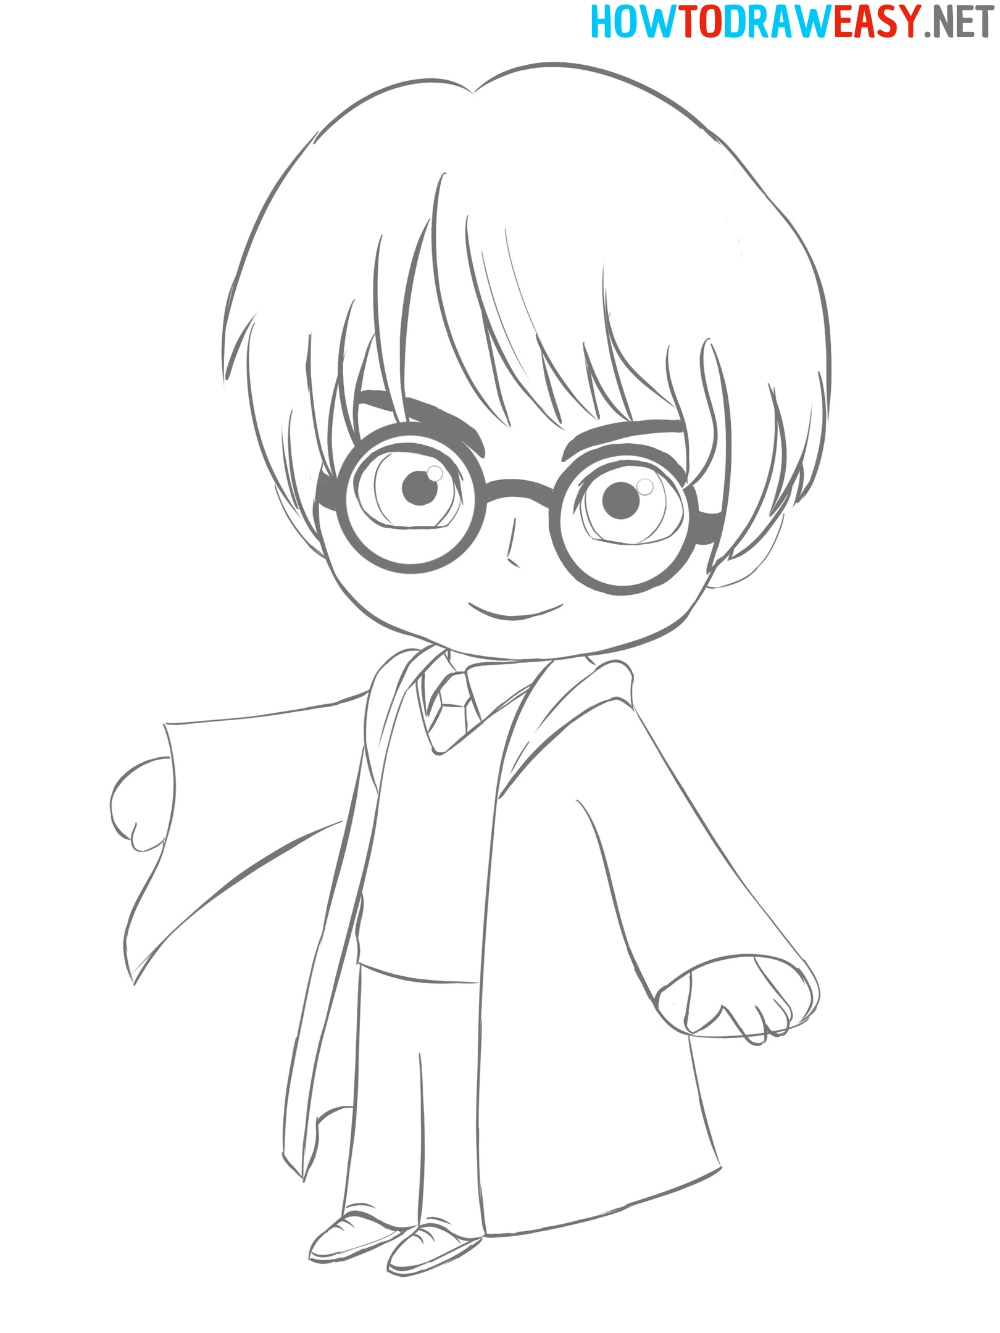 How to Draw Harry Potter Easy